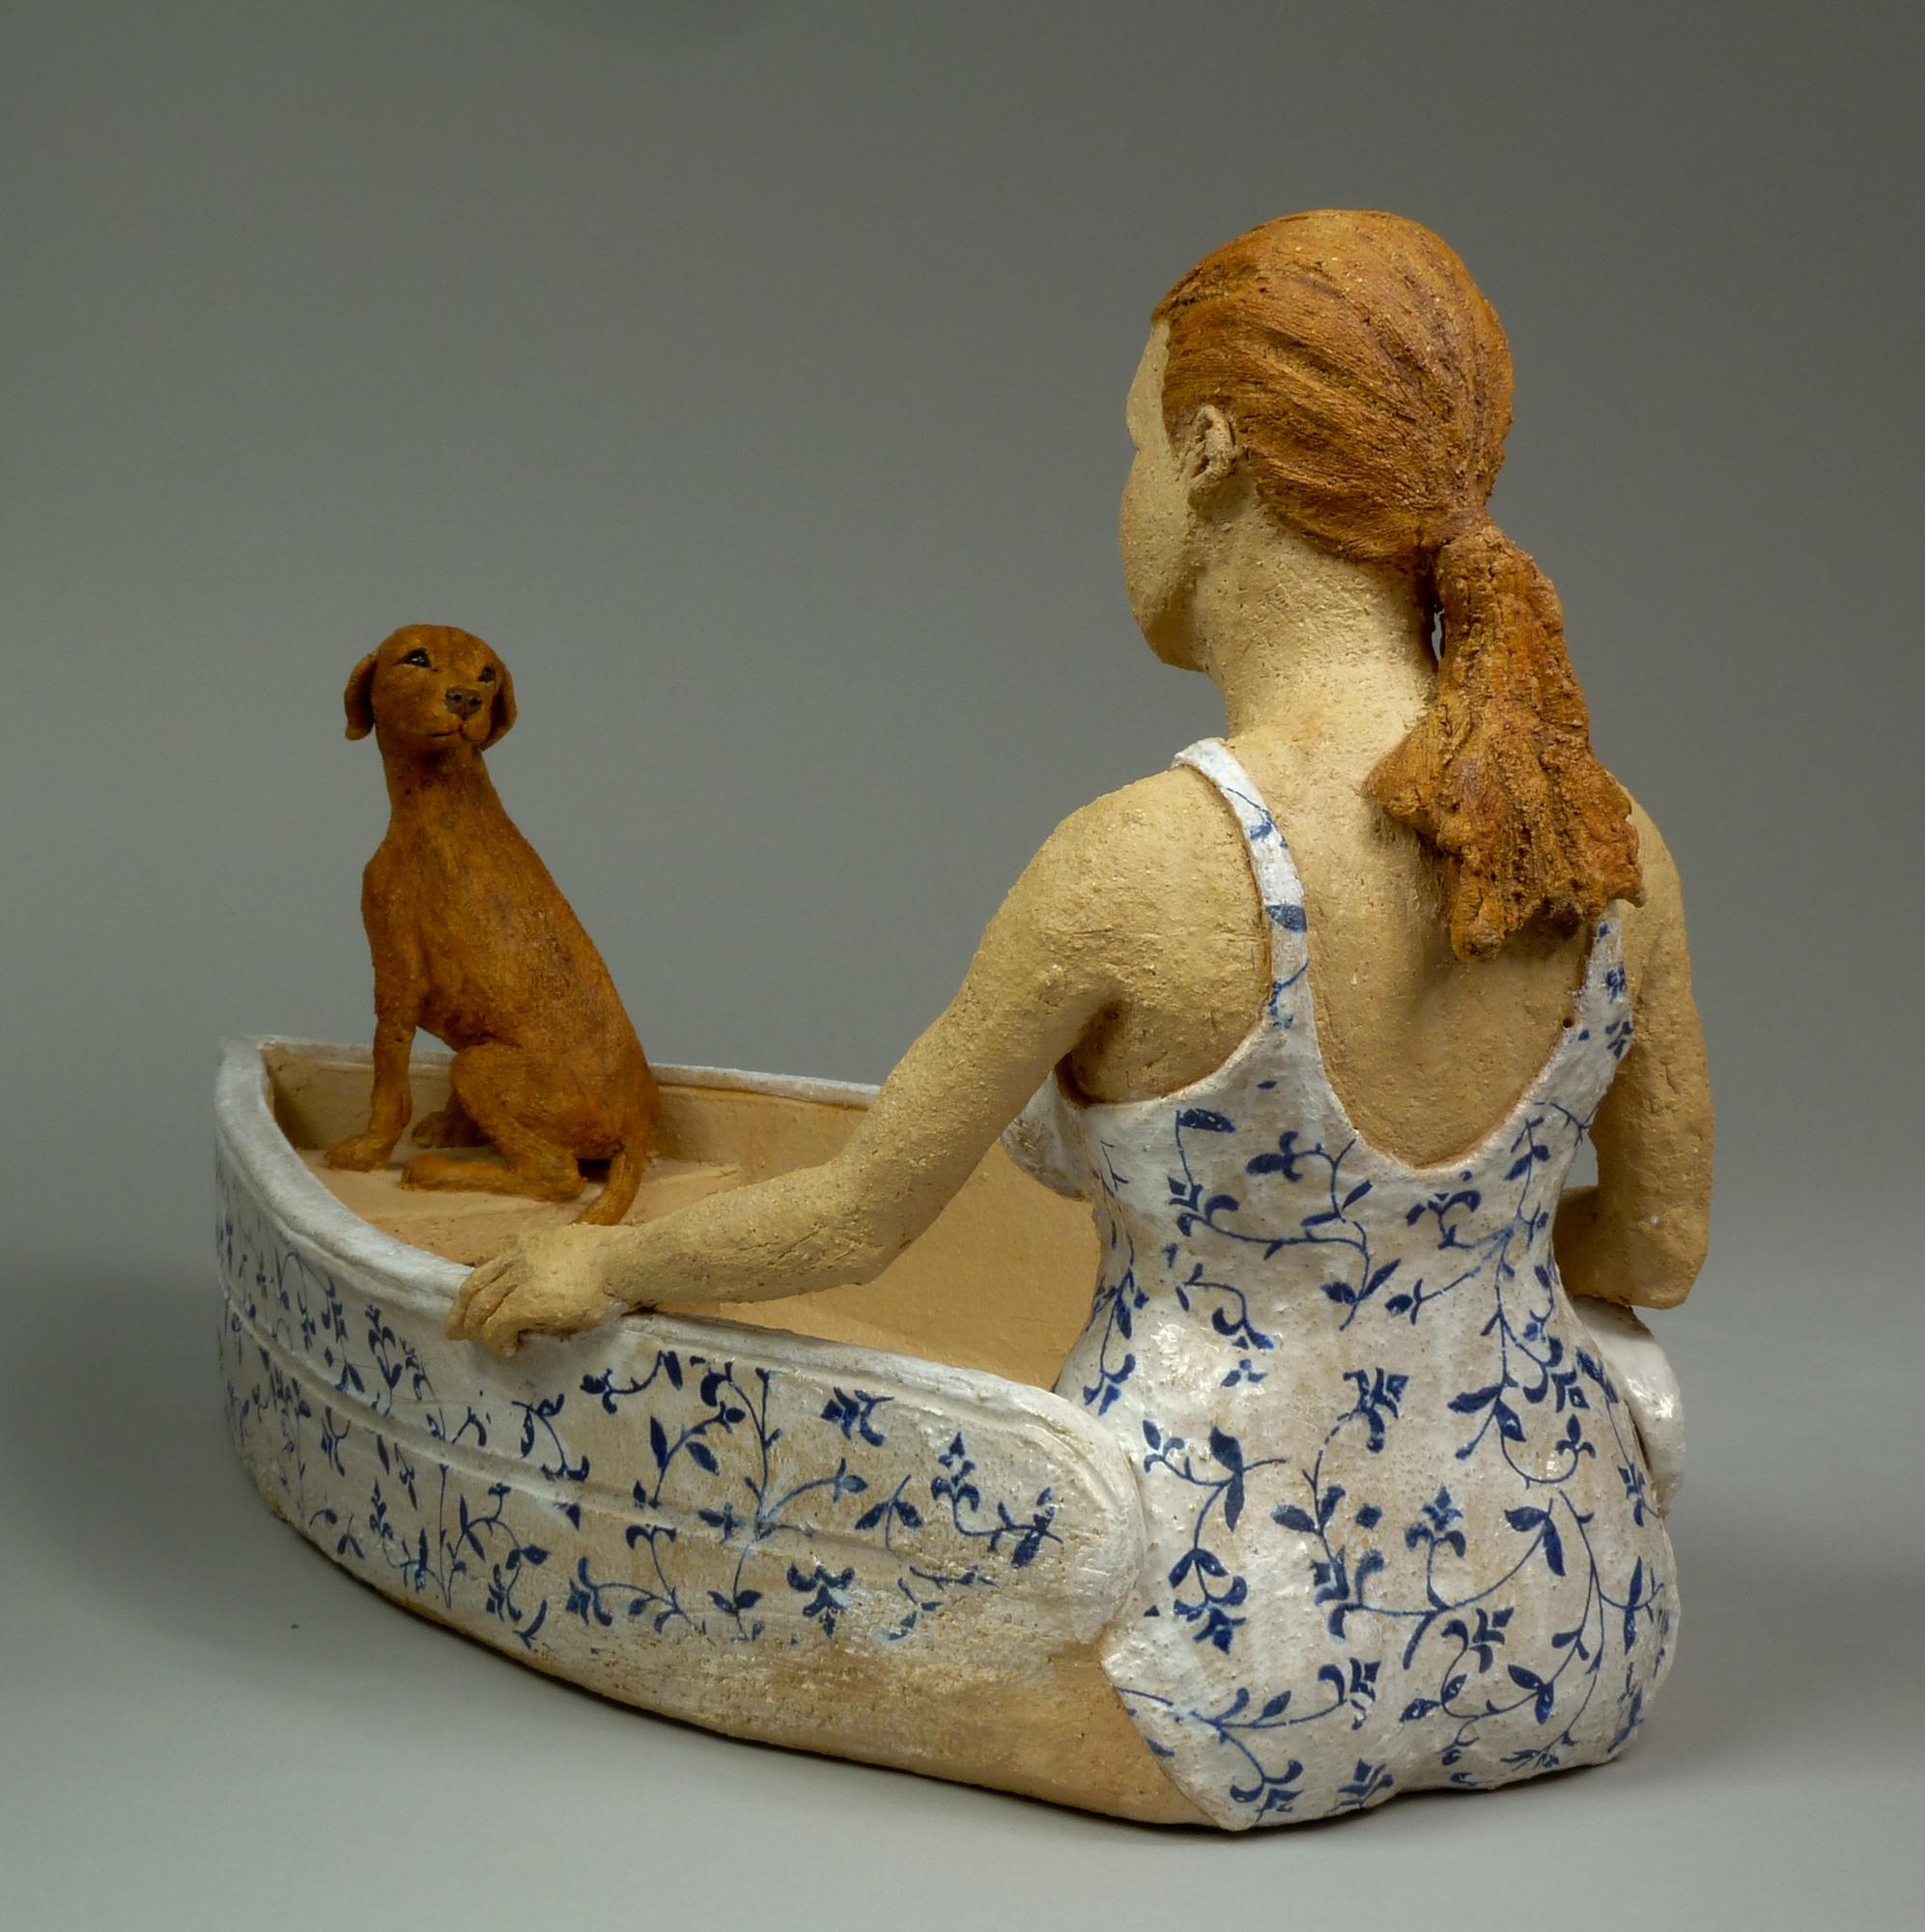 ceramic sculpture of a woman sitting in a rowboat